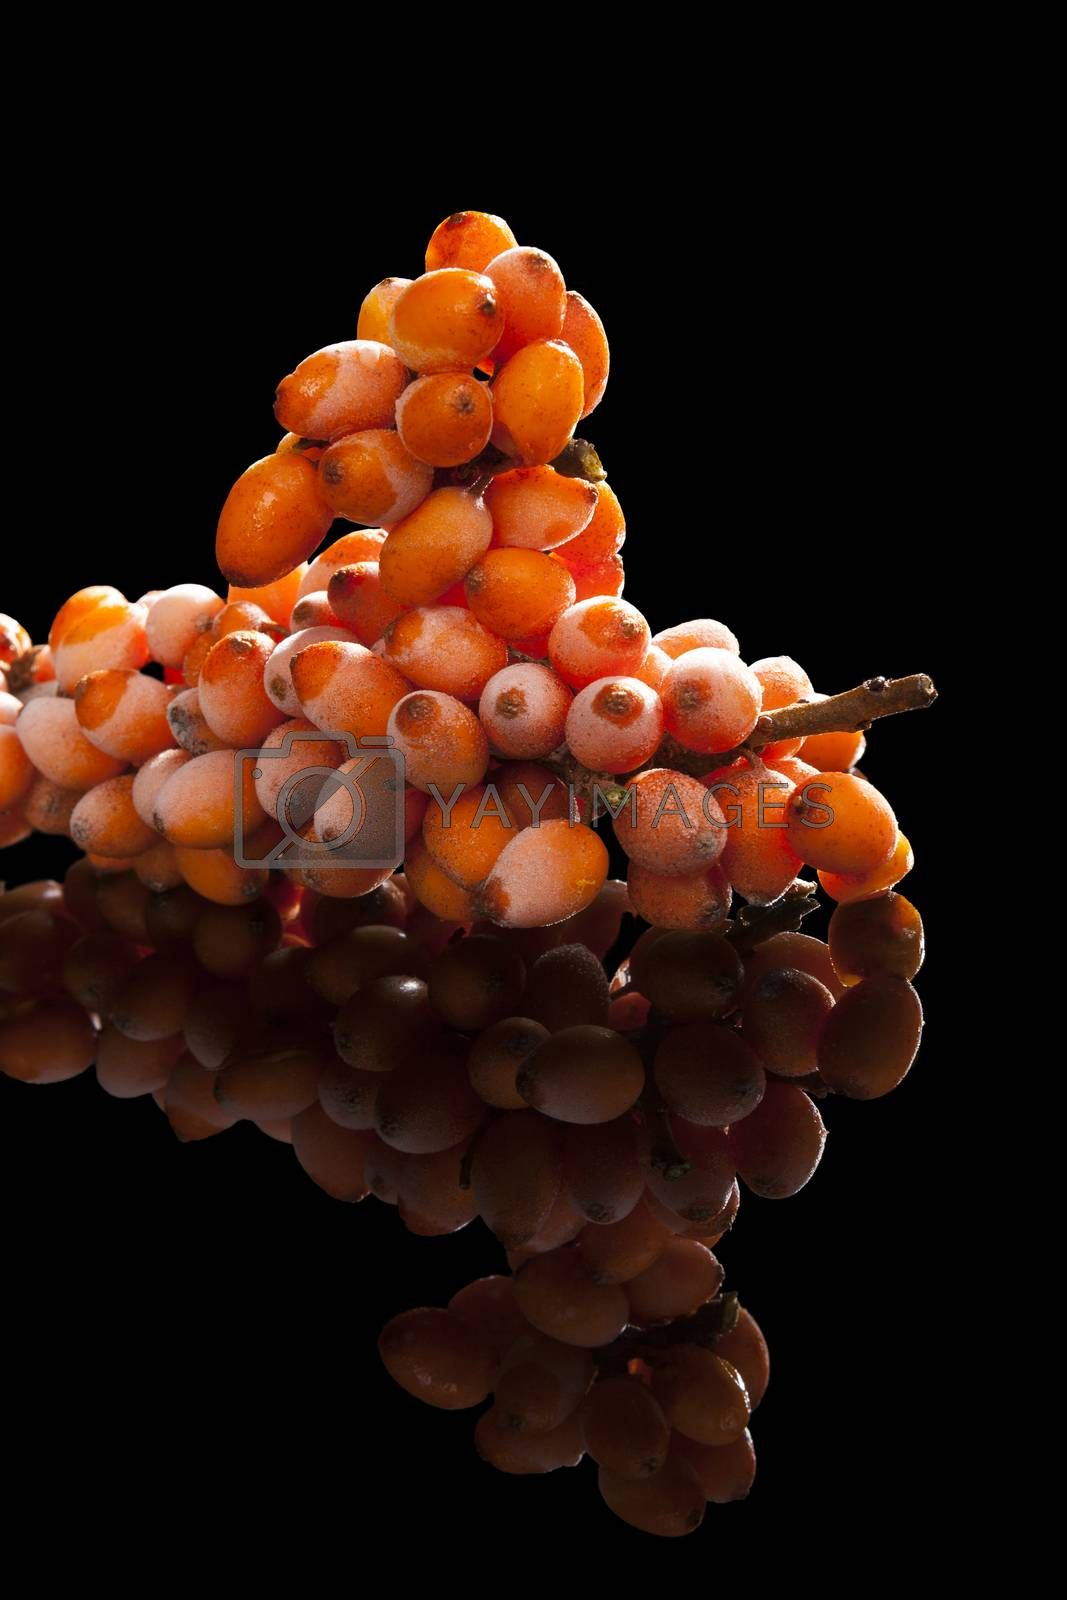 Seabuckthorn twig with frost on berries with reflection isolated on black background. Alternative medicine, natural antioxidant.